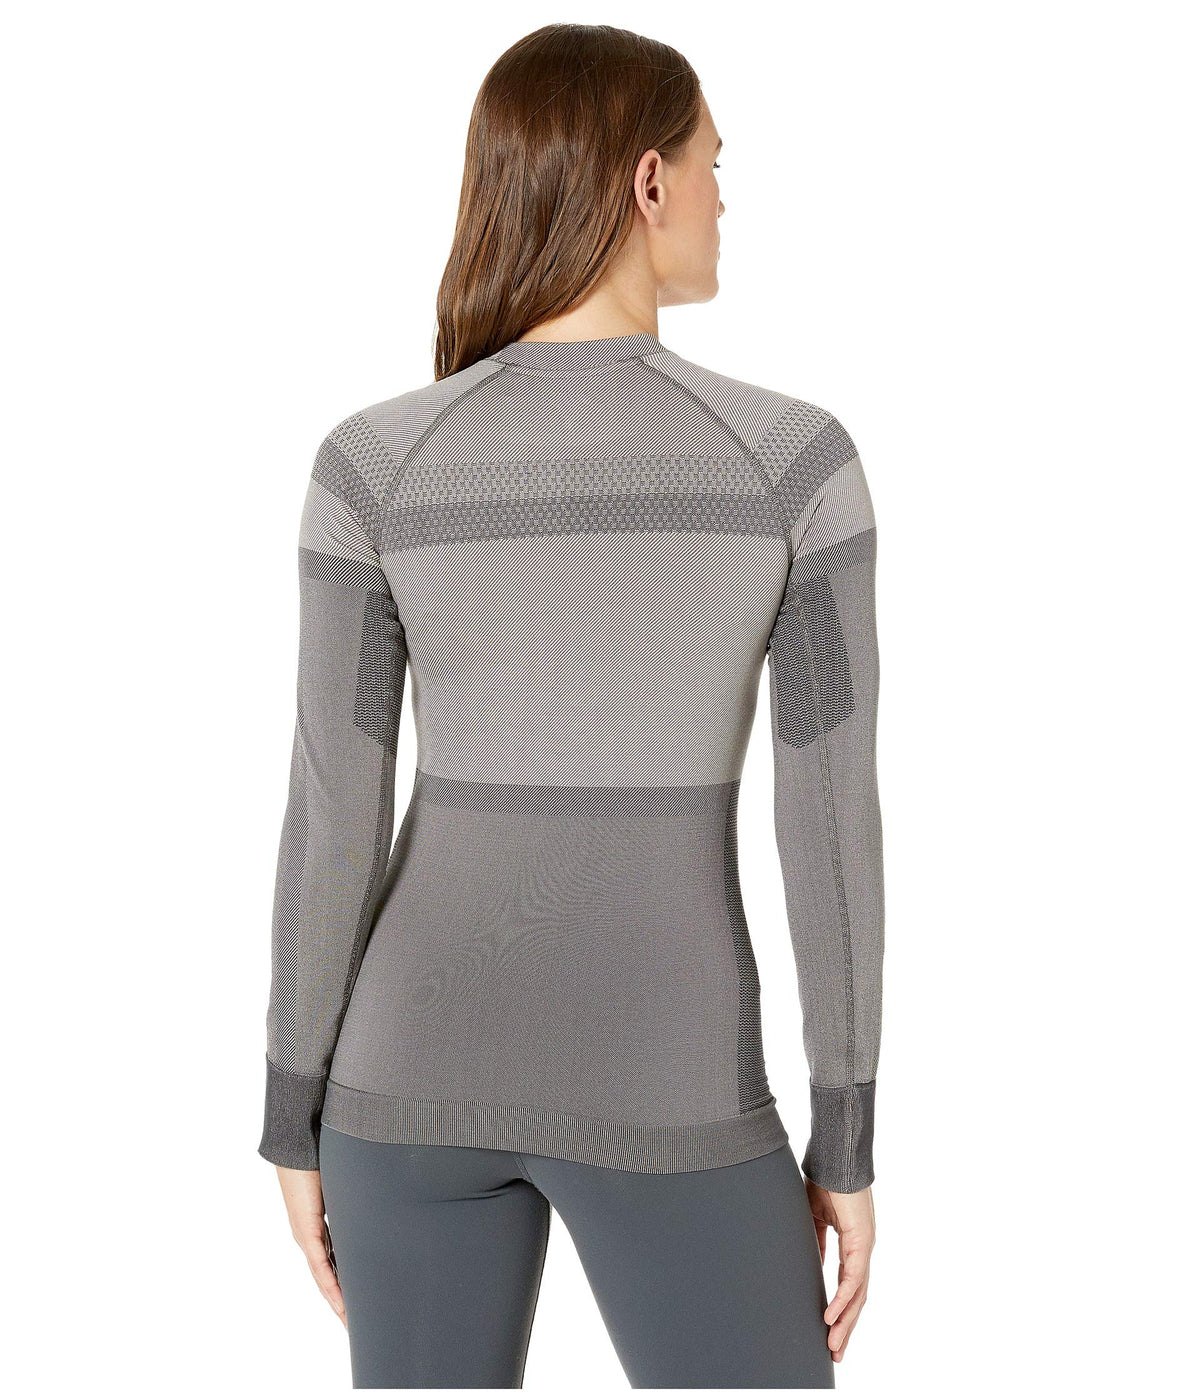 Warm Intensity Crew Neck Long Sleeve